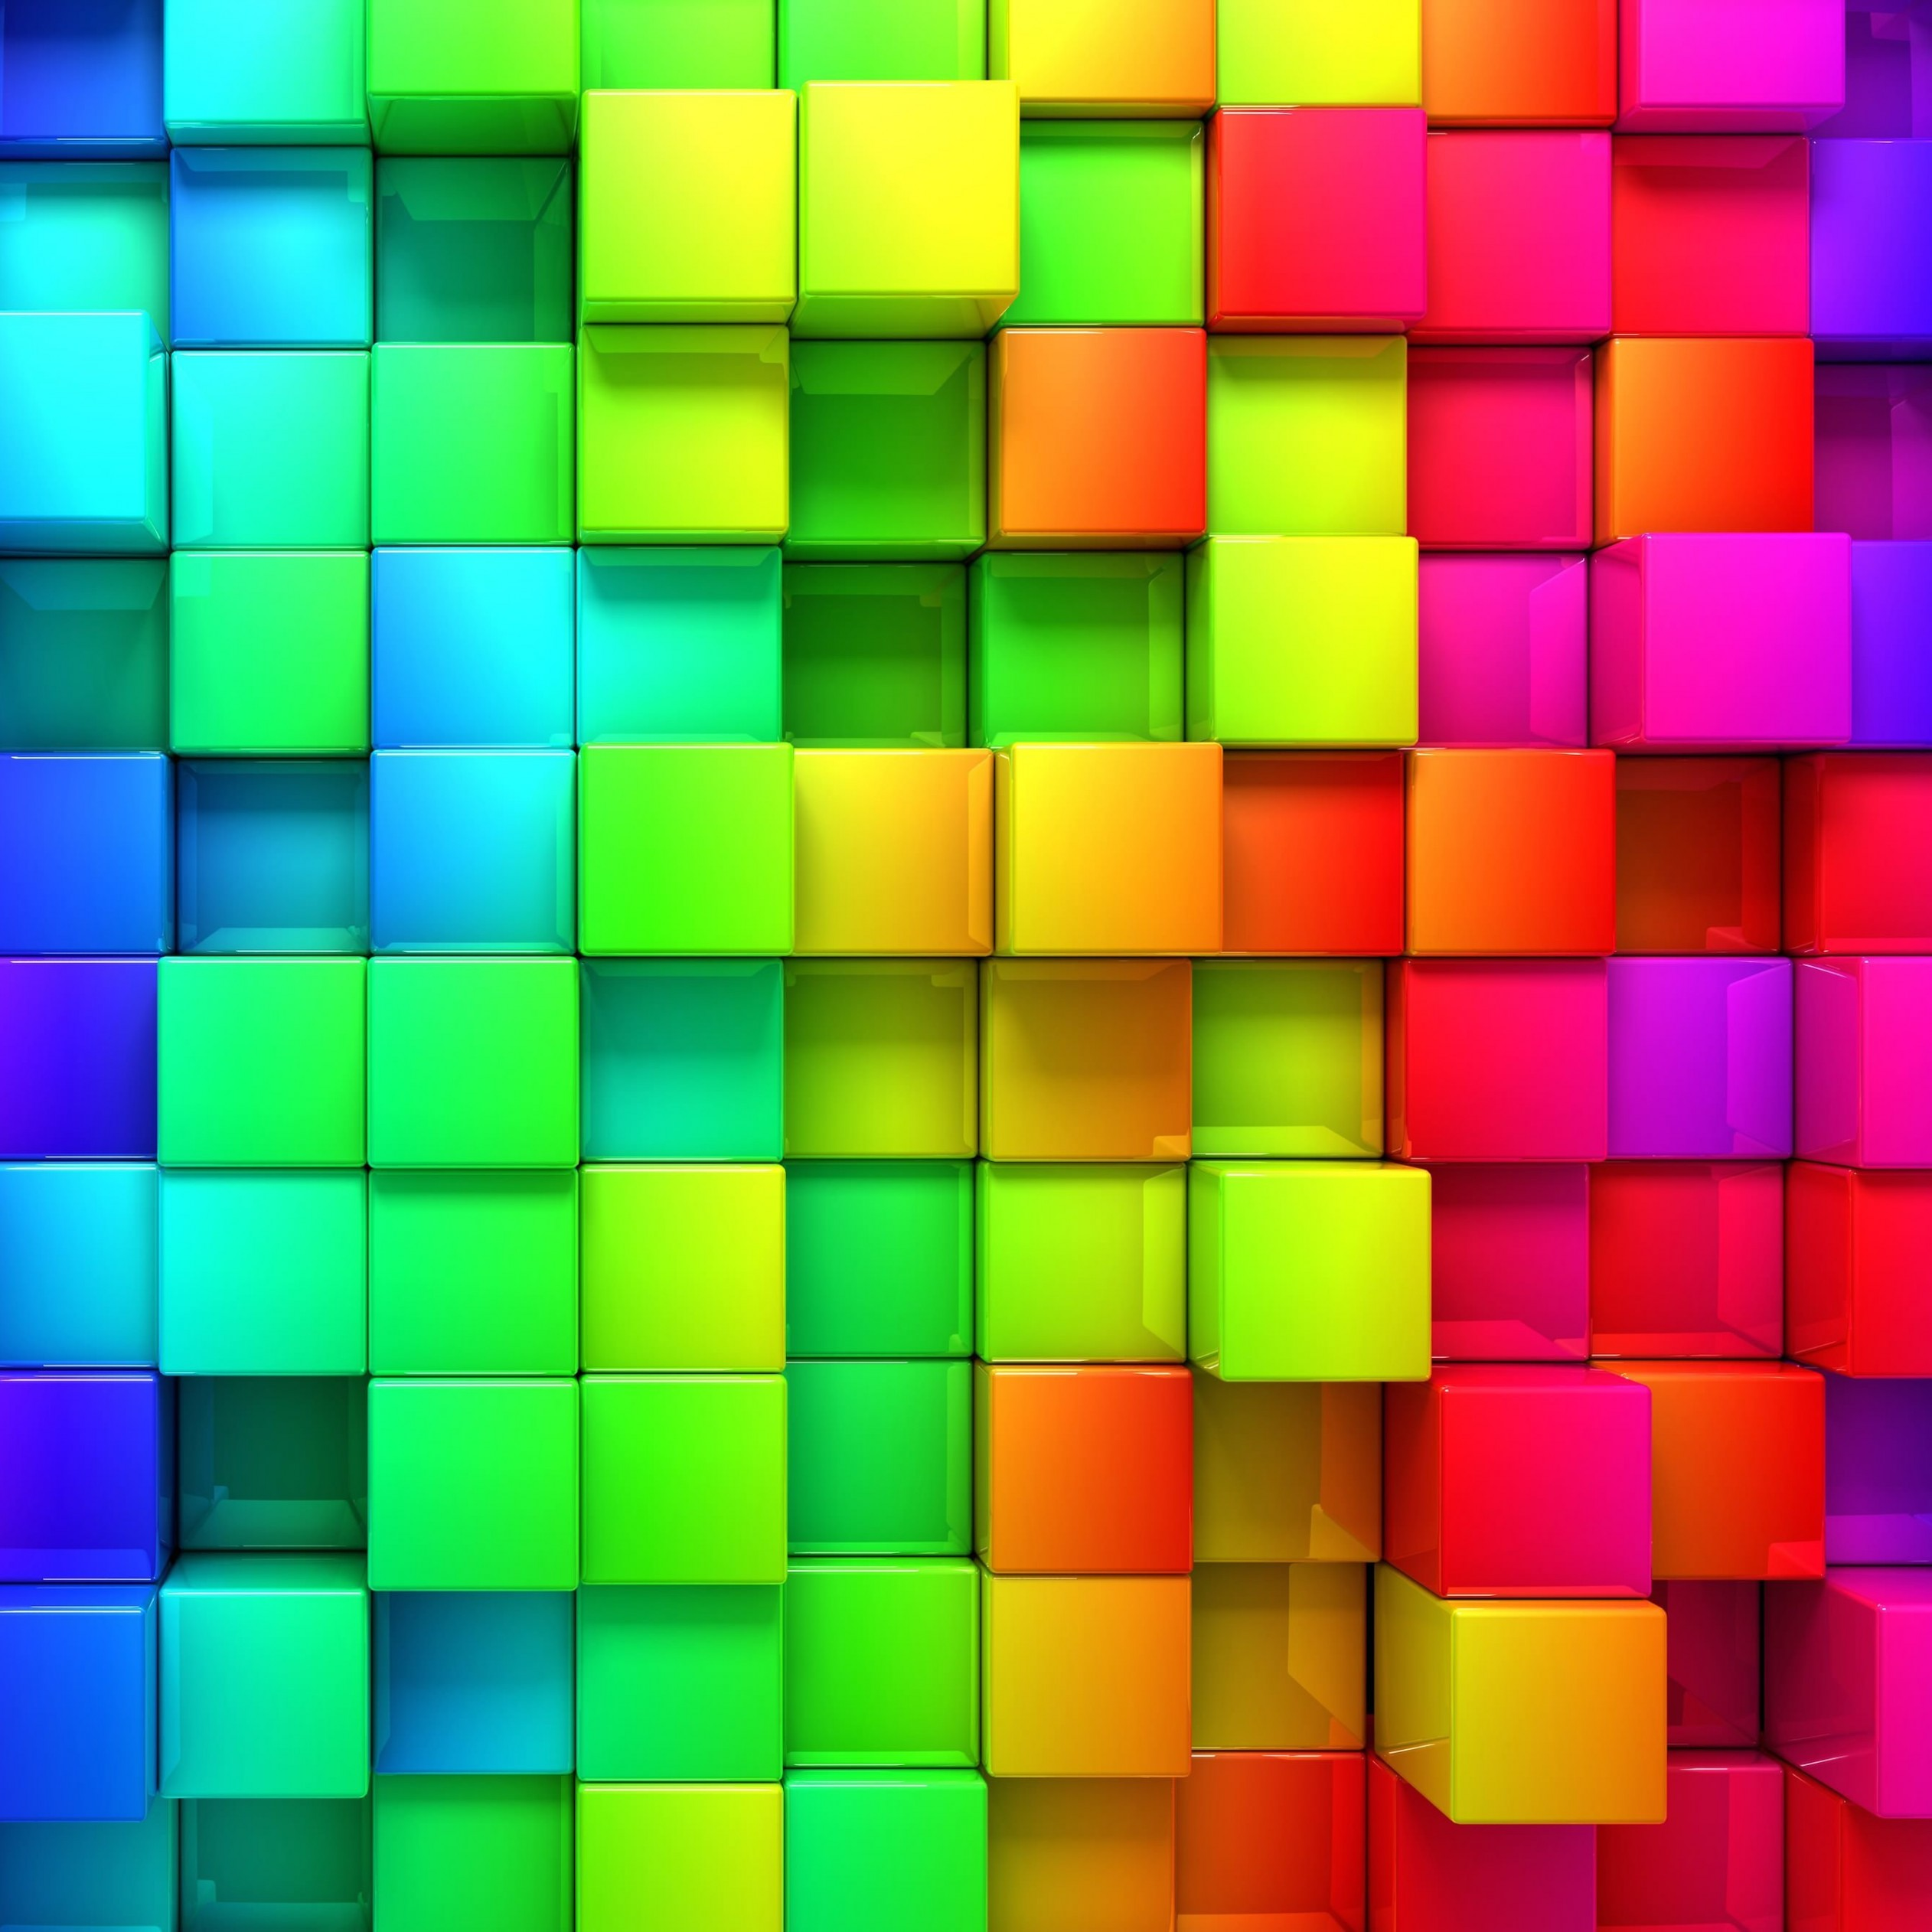 Cubic Rainbow Wallpaper for Apple iPad 3